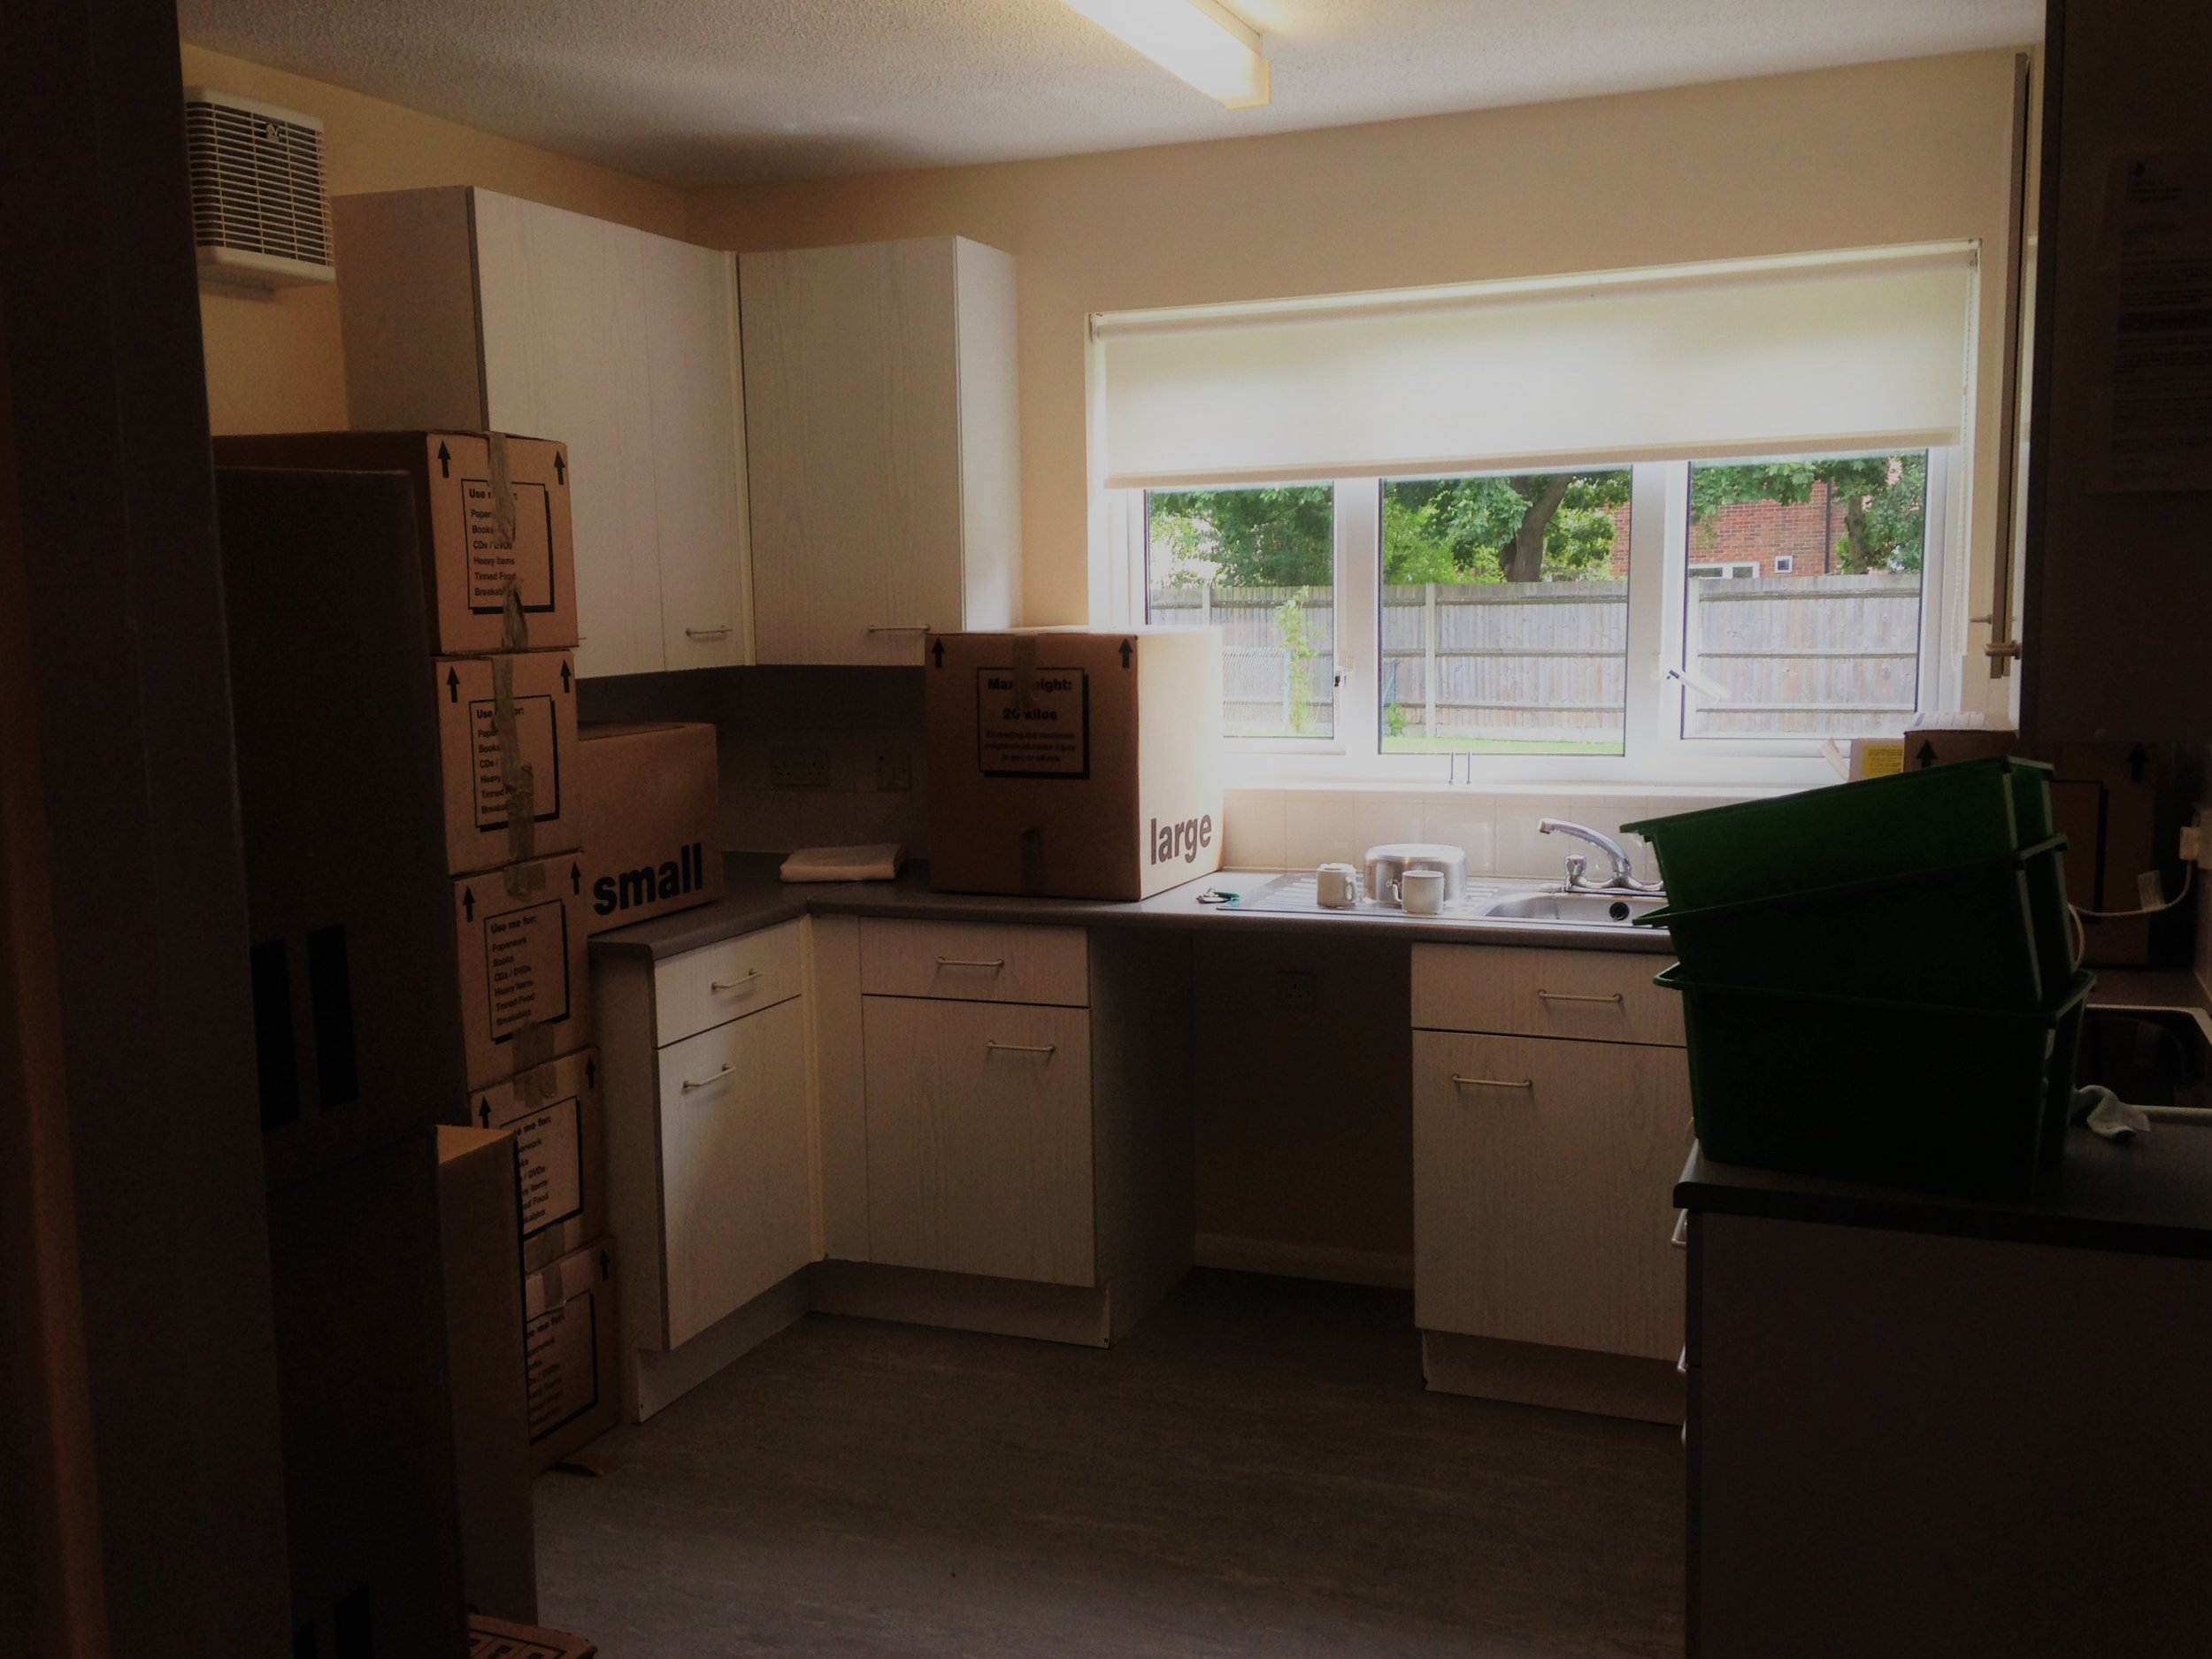 Another dark and characterless Army accommodation kitchen - also before I knew how to take photos!